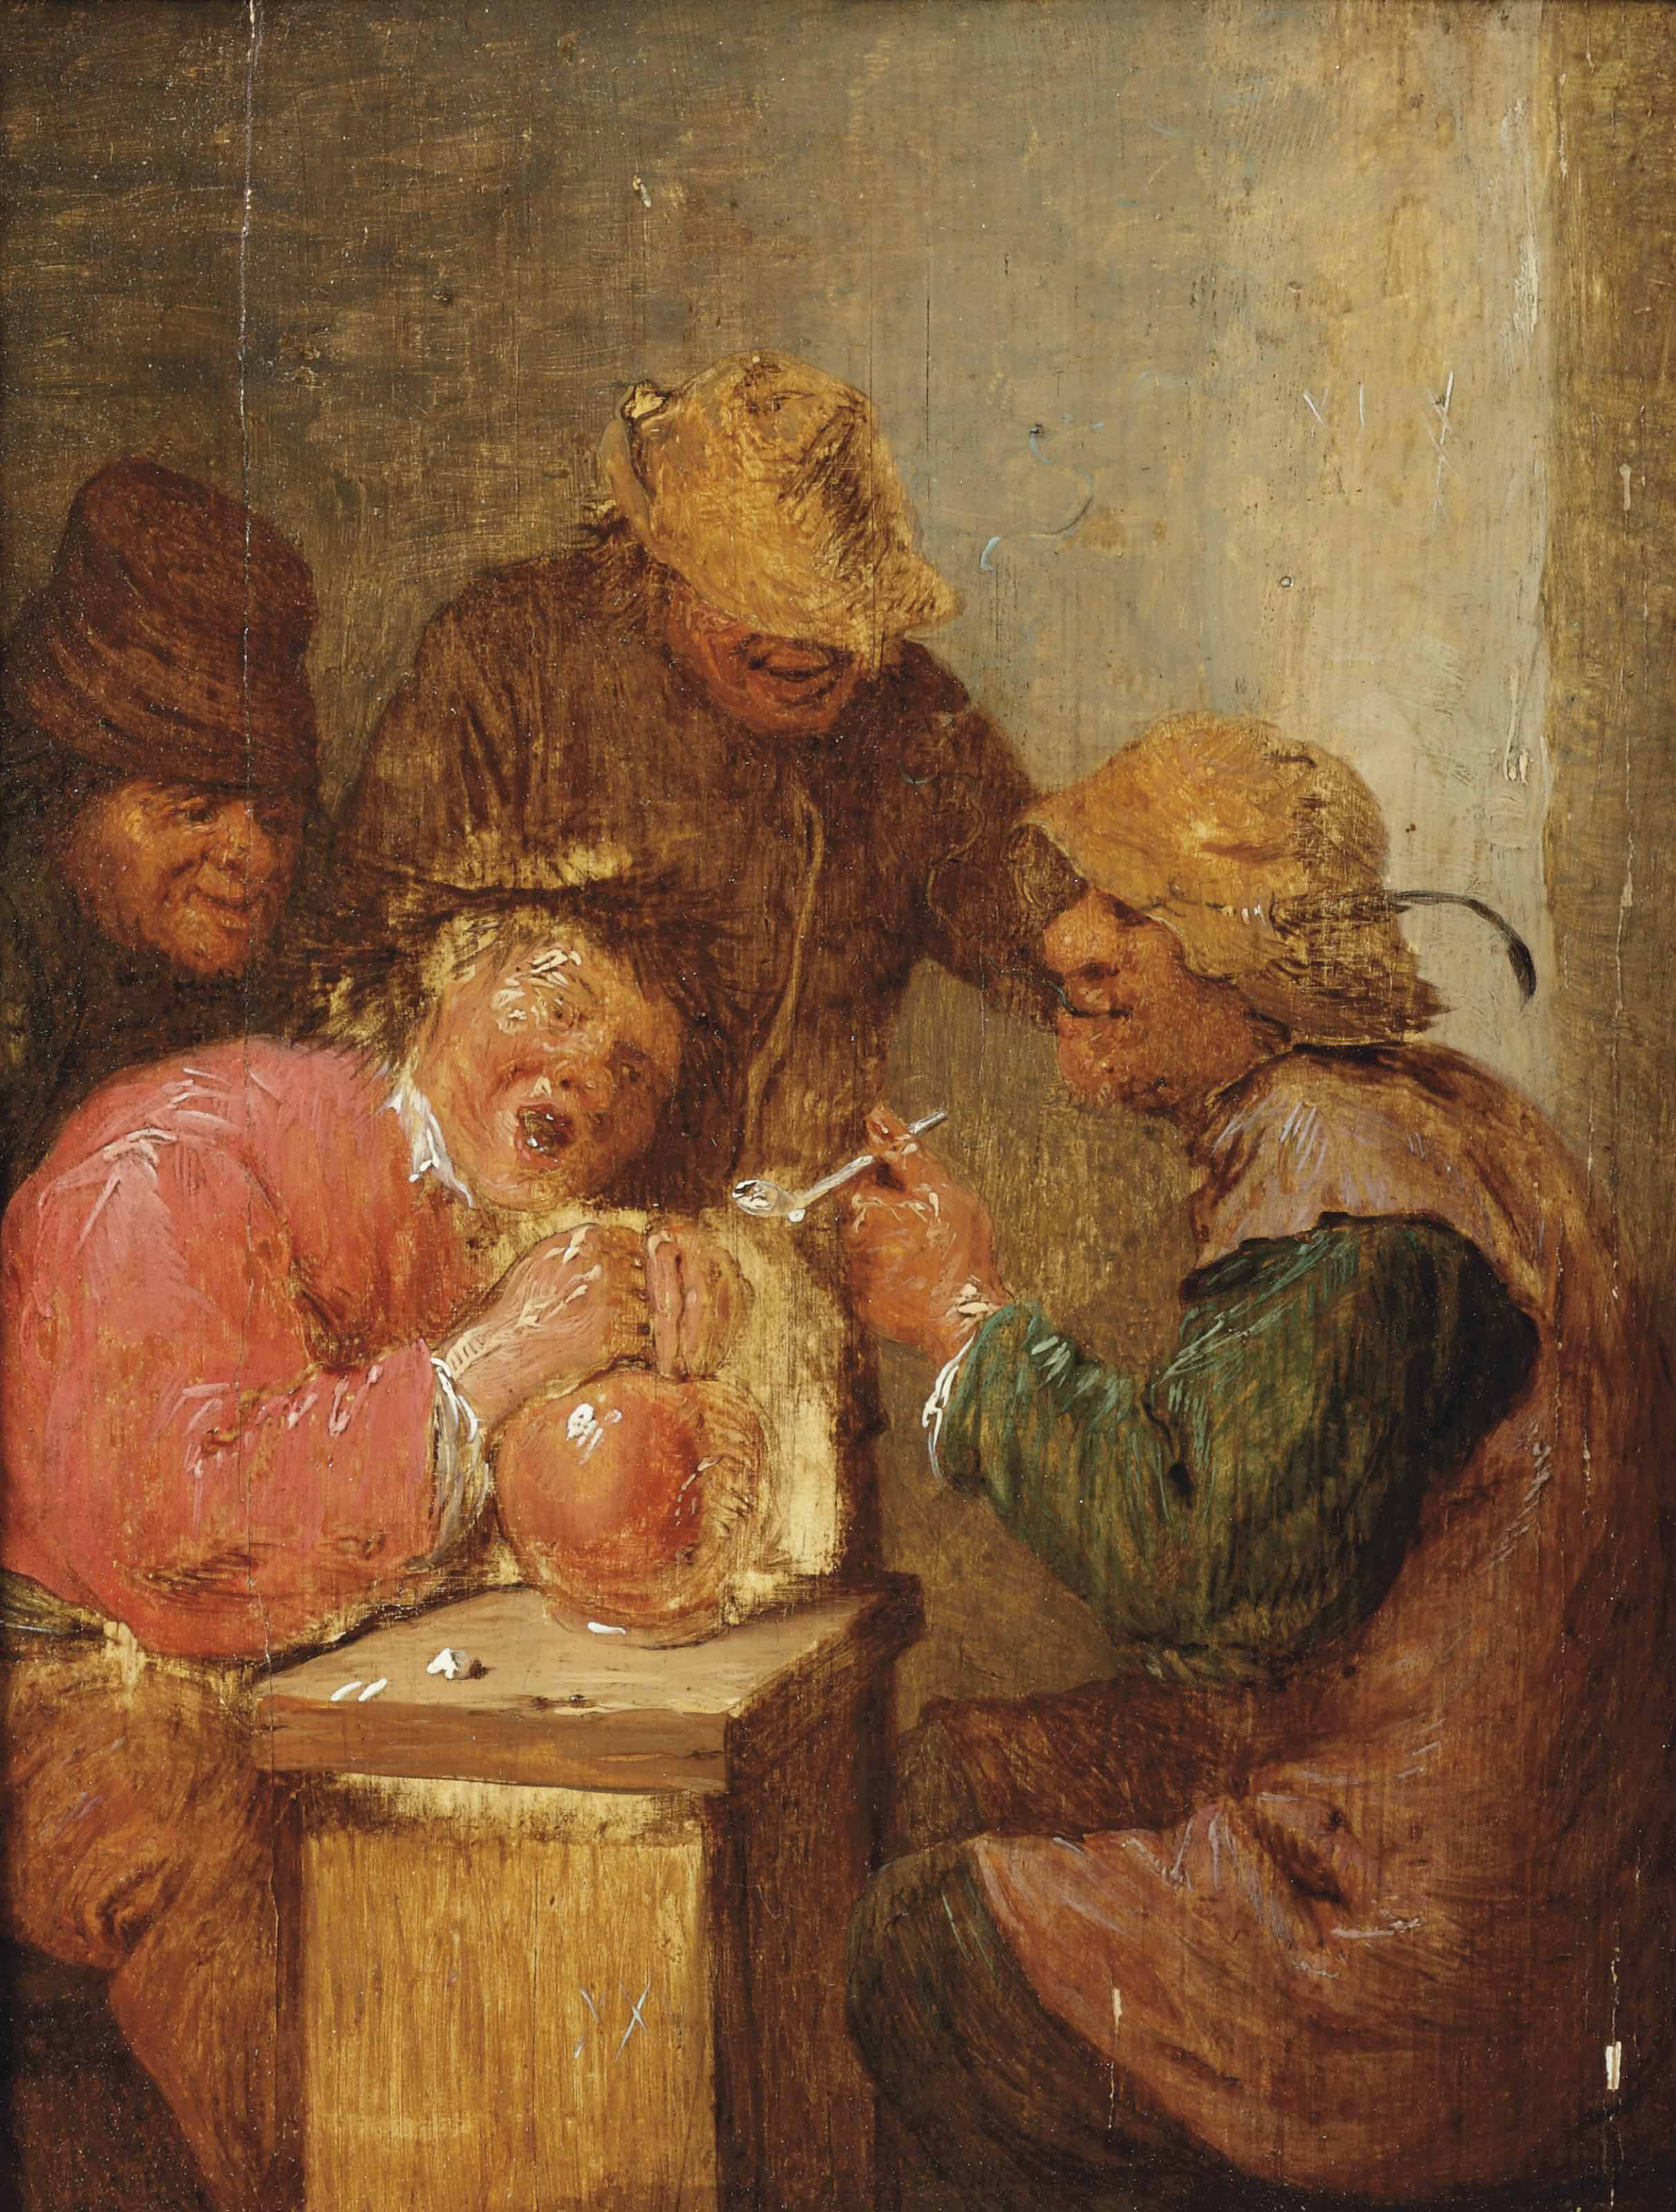 Four peasants drinking and smoking in an interior